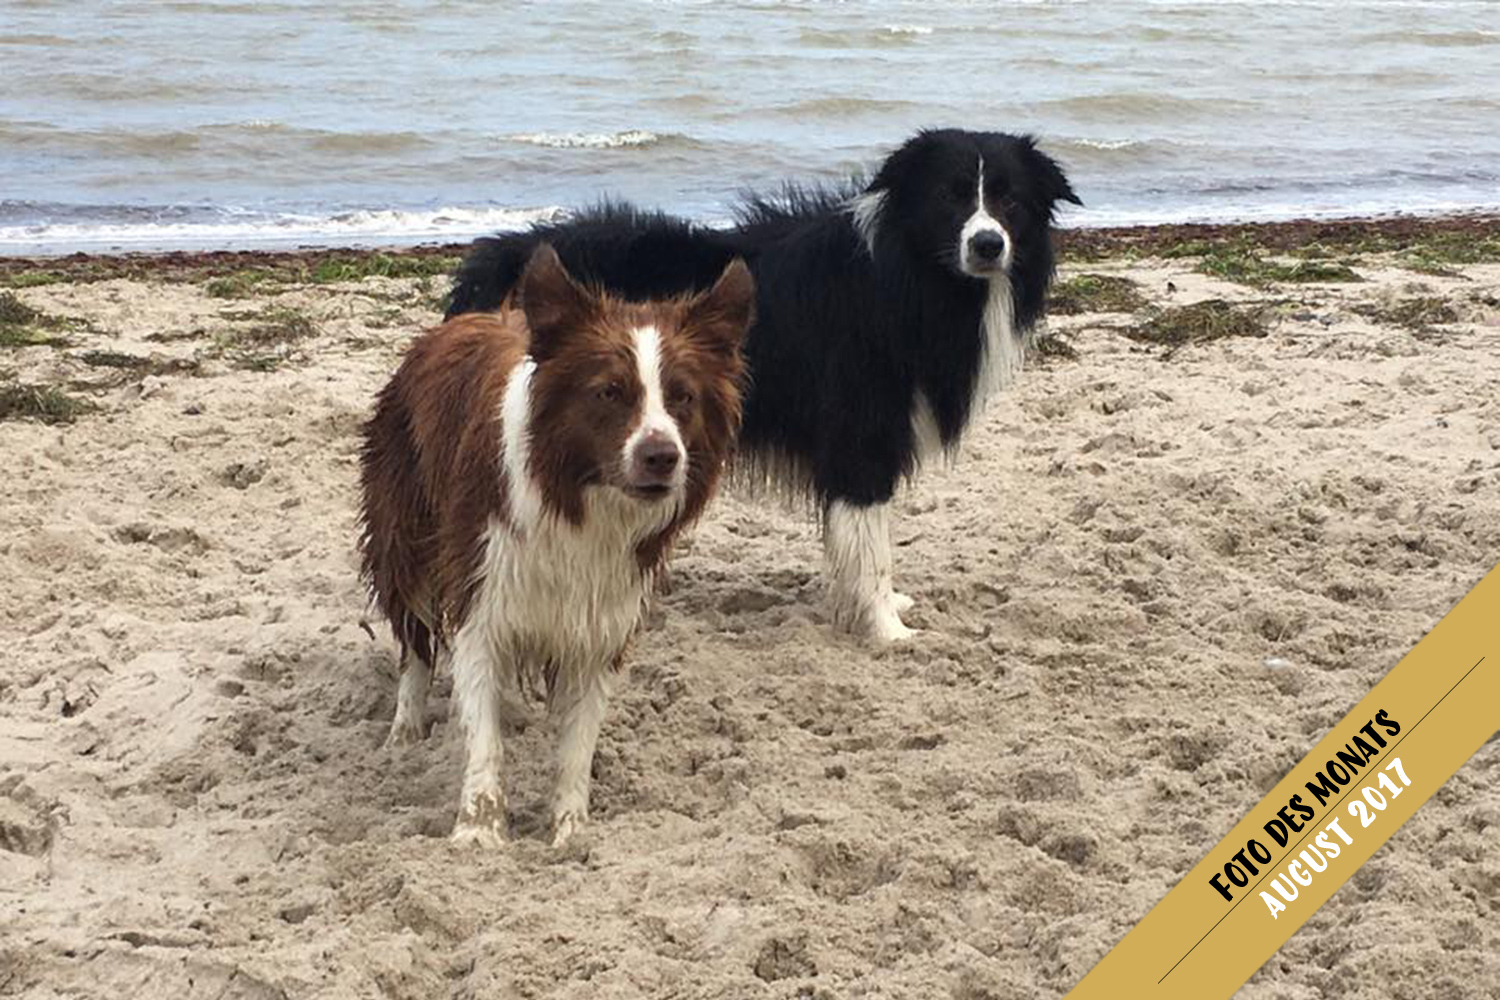 Foto des Monats: Edda und Bounty (Broadmeadows Almost Rosey/Dressed for Success) am Ostsee-Strand